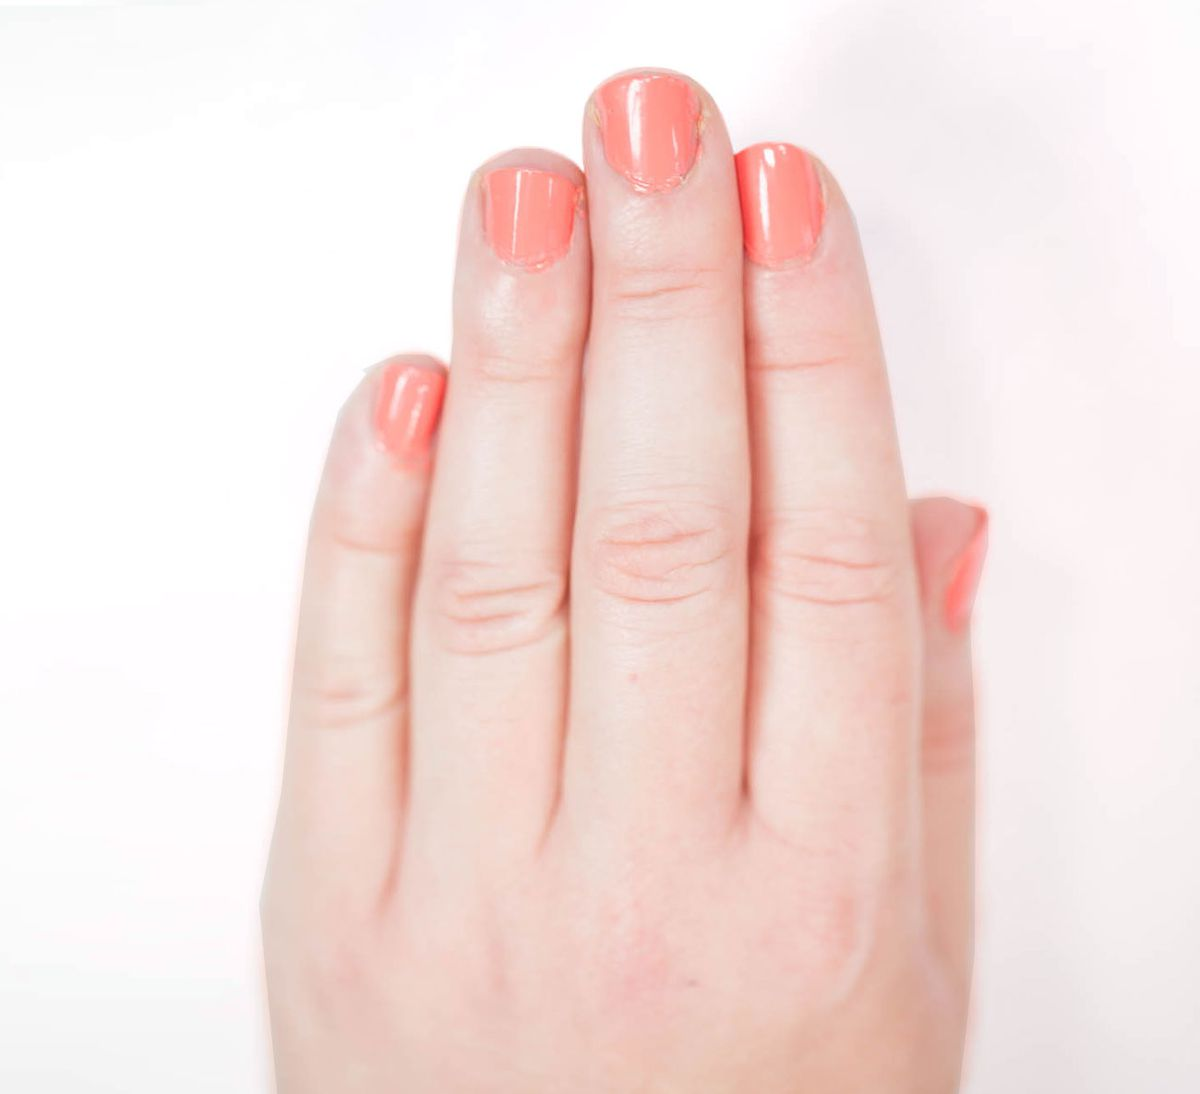 I Channeled My Nail Salon Guilt into Becoming an At-Home